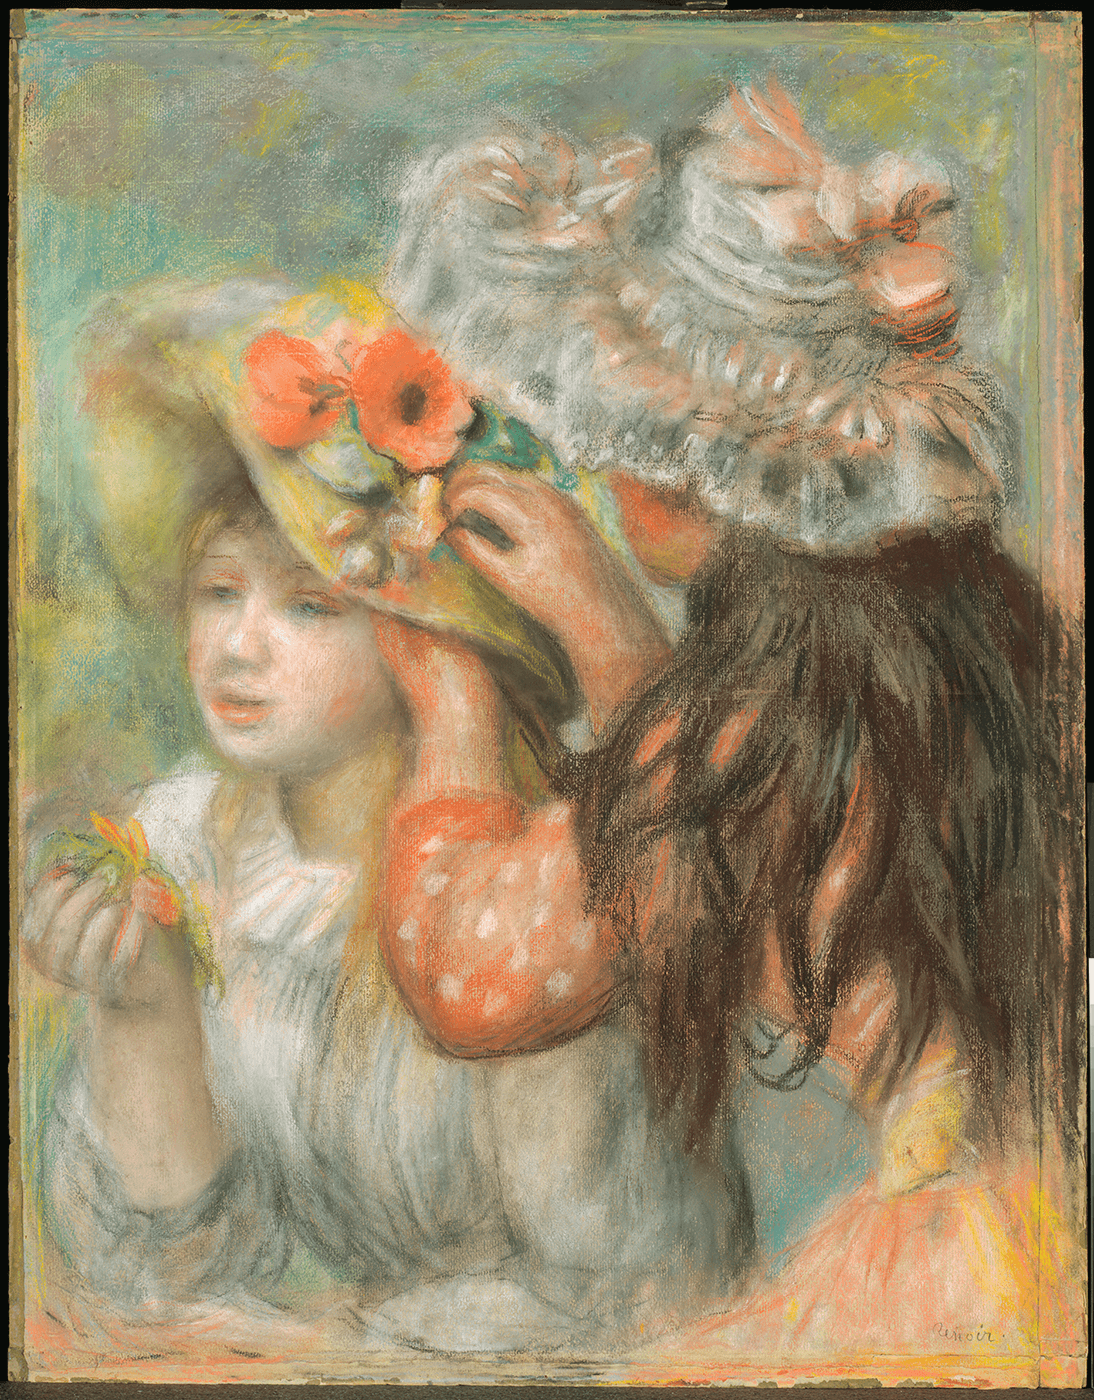 Two girls decorate a hat. On the right is a brunette seen from behind, and on the left is a strawberry blonde girl.